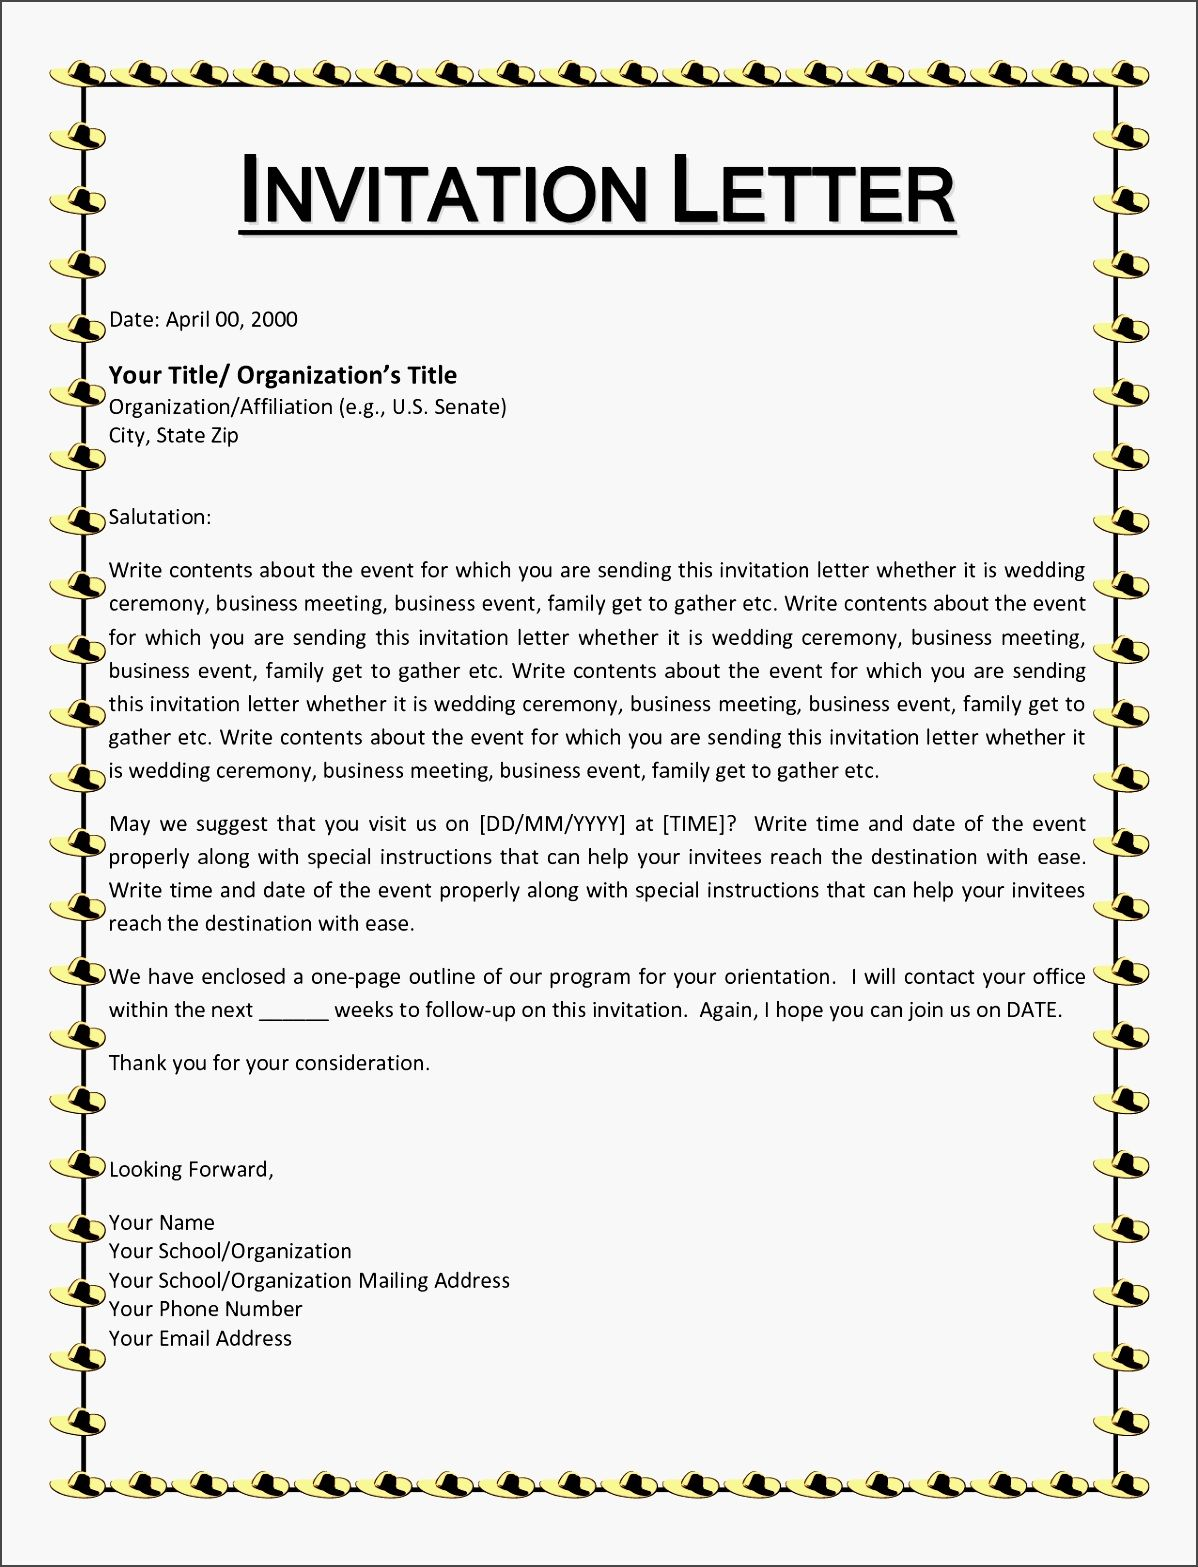 invitation letter informal saevk beautiful wedding With example of a wedding invitation letter